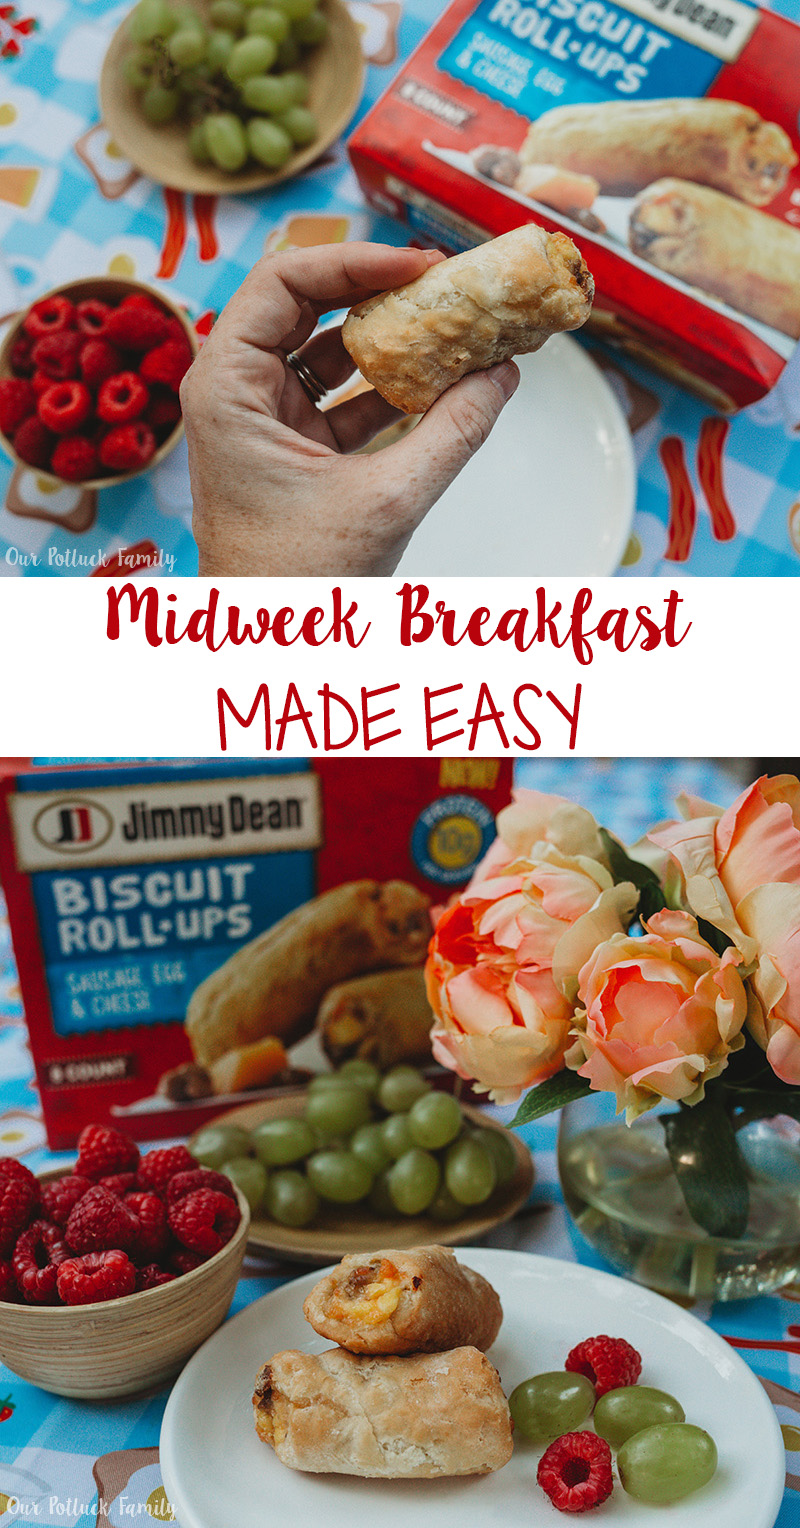 Midweek Breakfast Made Easy